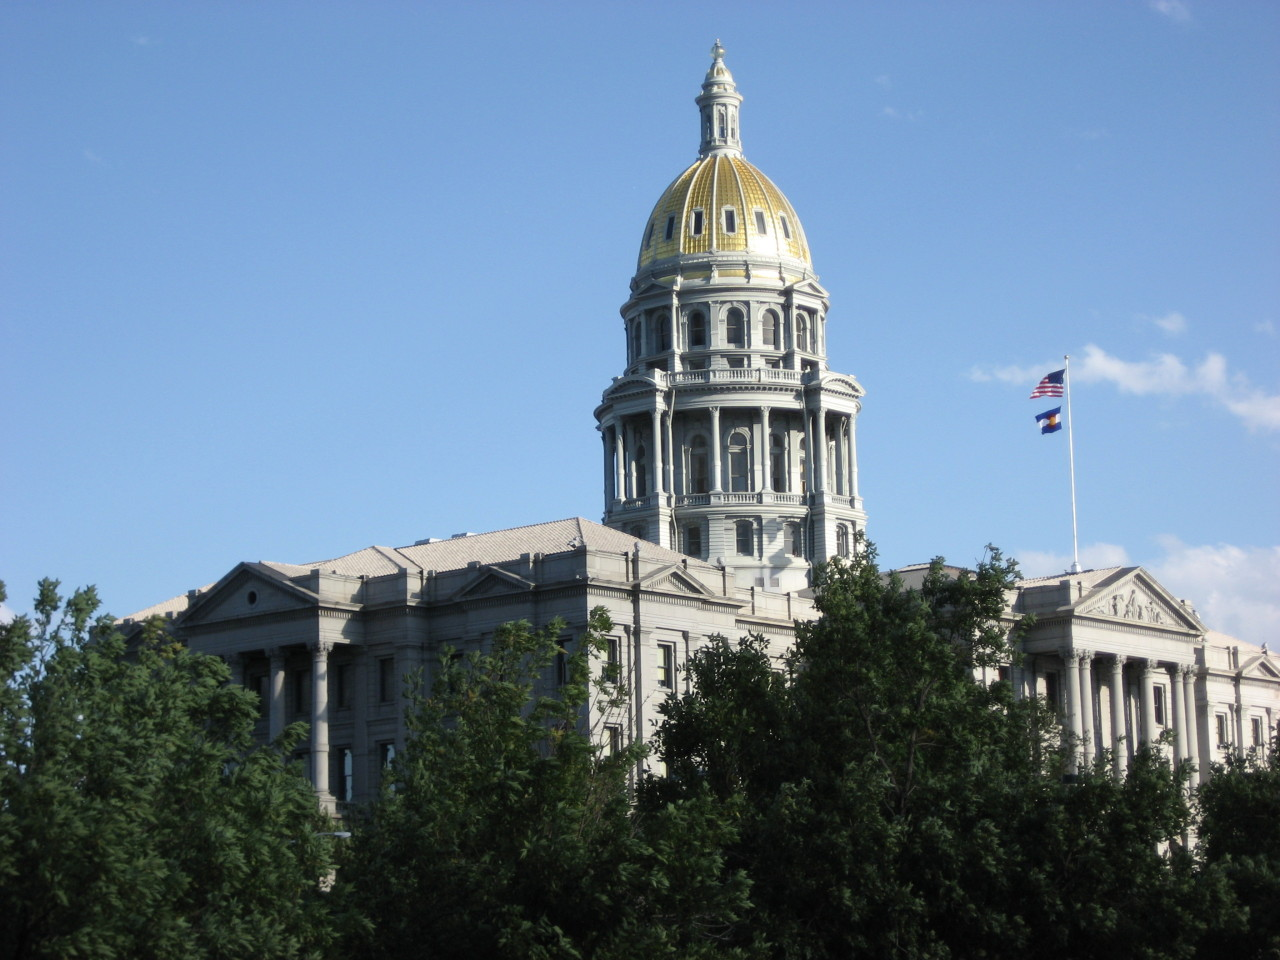 State Capitol - Denver, Colorado